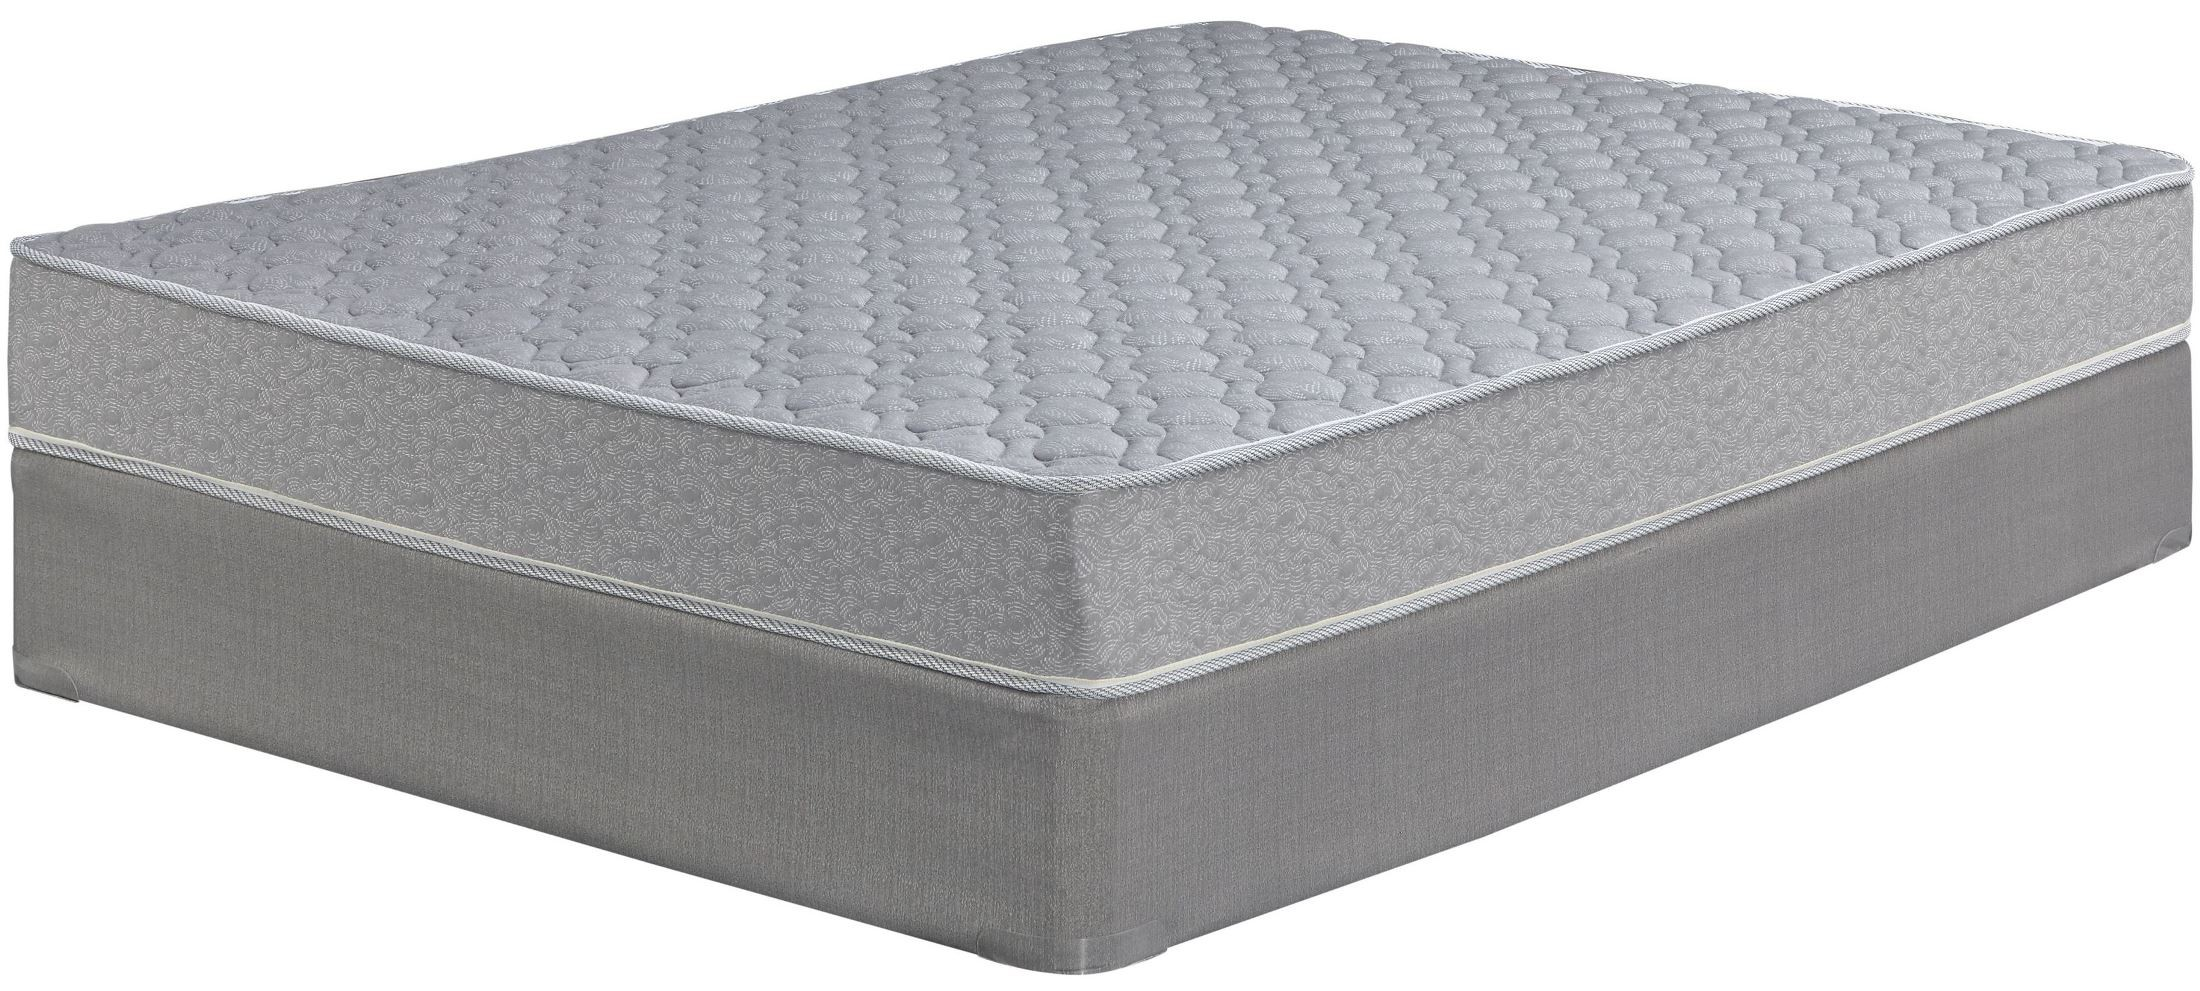 Tori Cove Starter Innerspring White Twin Mattress With Foundation M90611 M81x12 Ashley